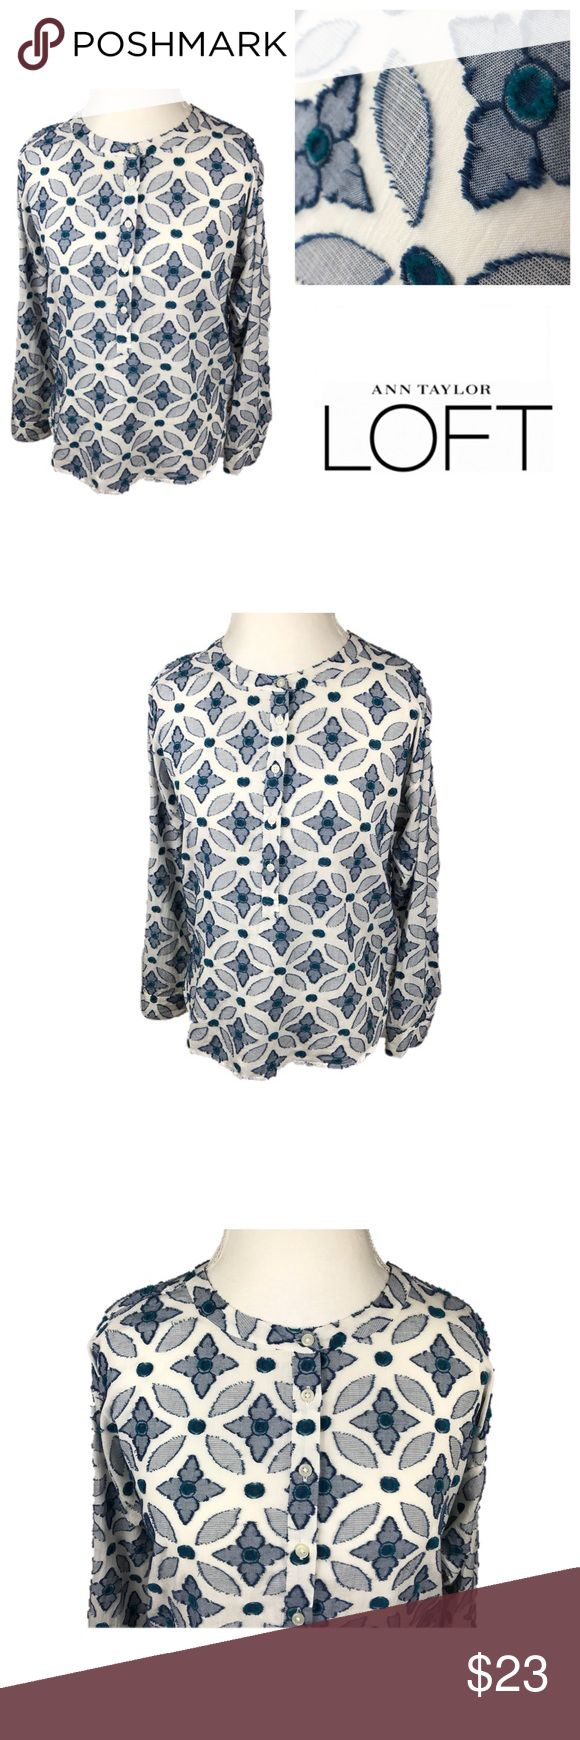 Ann Taylor LOFT Floral Long Sleeve Top. Floral Long Sleeve Top. The softened shirt has a relaxed fit with 5 buttons going down half the front and one at each cuff. Lovely textured look giving the shirt dimension.  Gently worn. Fabric does have mild wear including pulls off thread and small areas missing thread. Due to the busy design this does not take away from the quality of the shirt. See last picture.  Blue & white Small 100% cotton  Approximate measurements in inches  Shoulder 20 Sleeve…